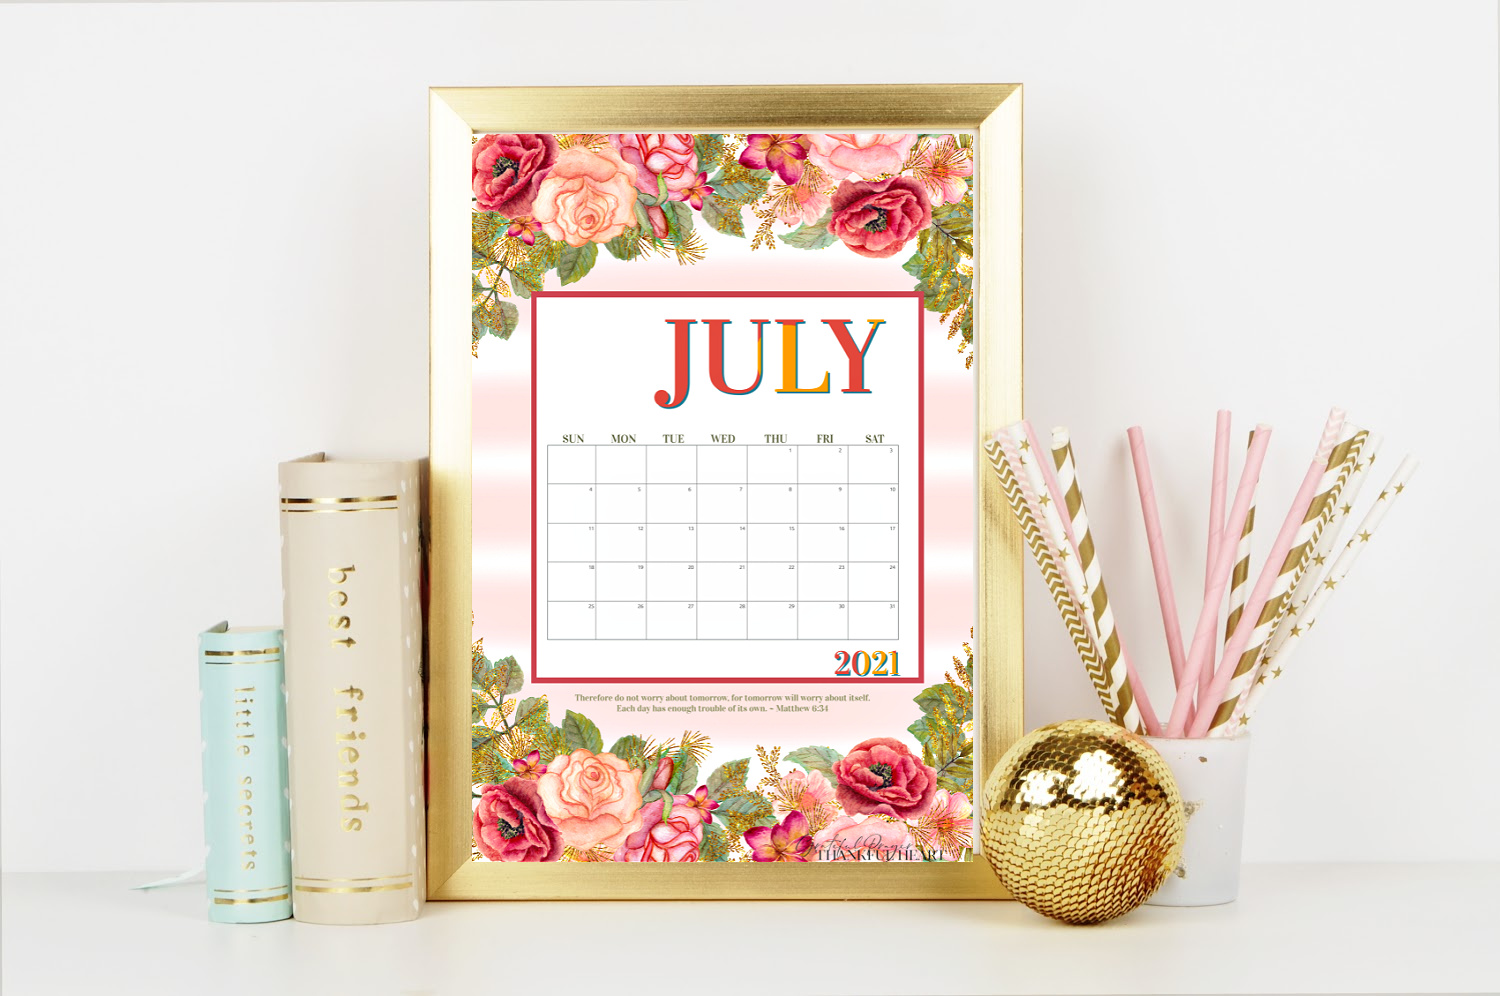 FREE July Calendar and weekly planner printables to keep you organized this summer. Pretty rose blossoms help welcome the month of July. A 2021 and blank version to use year after year.